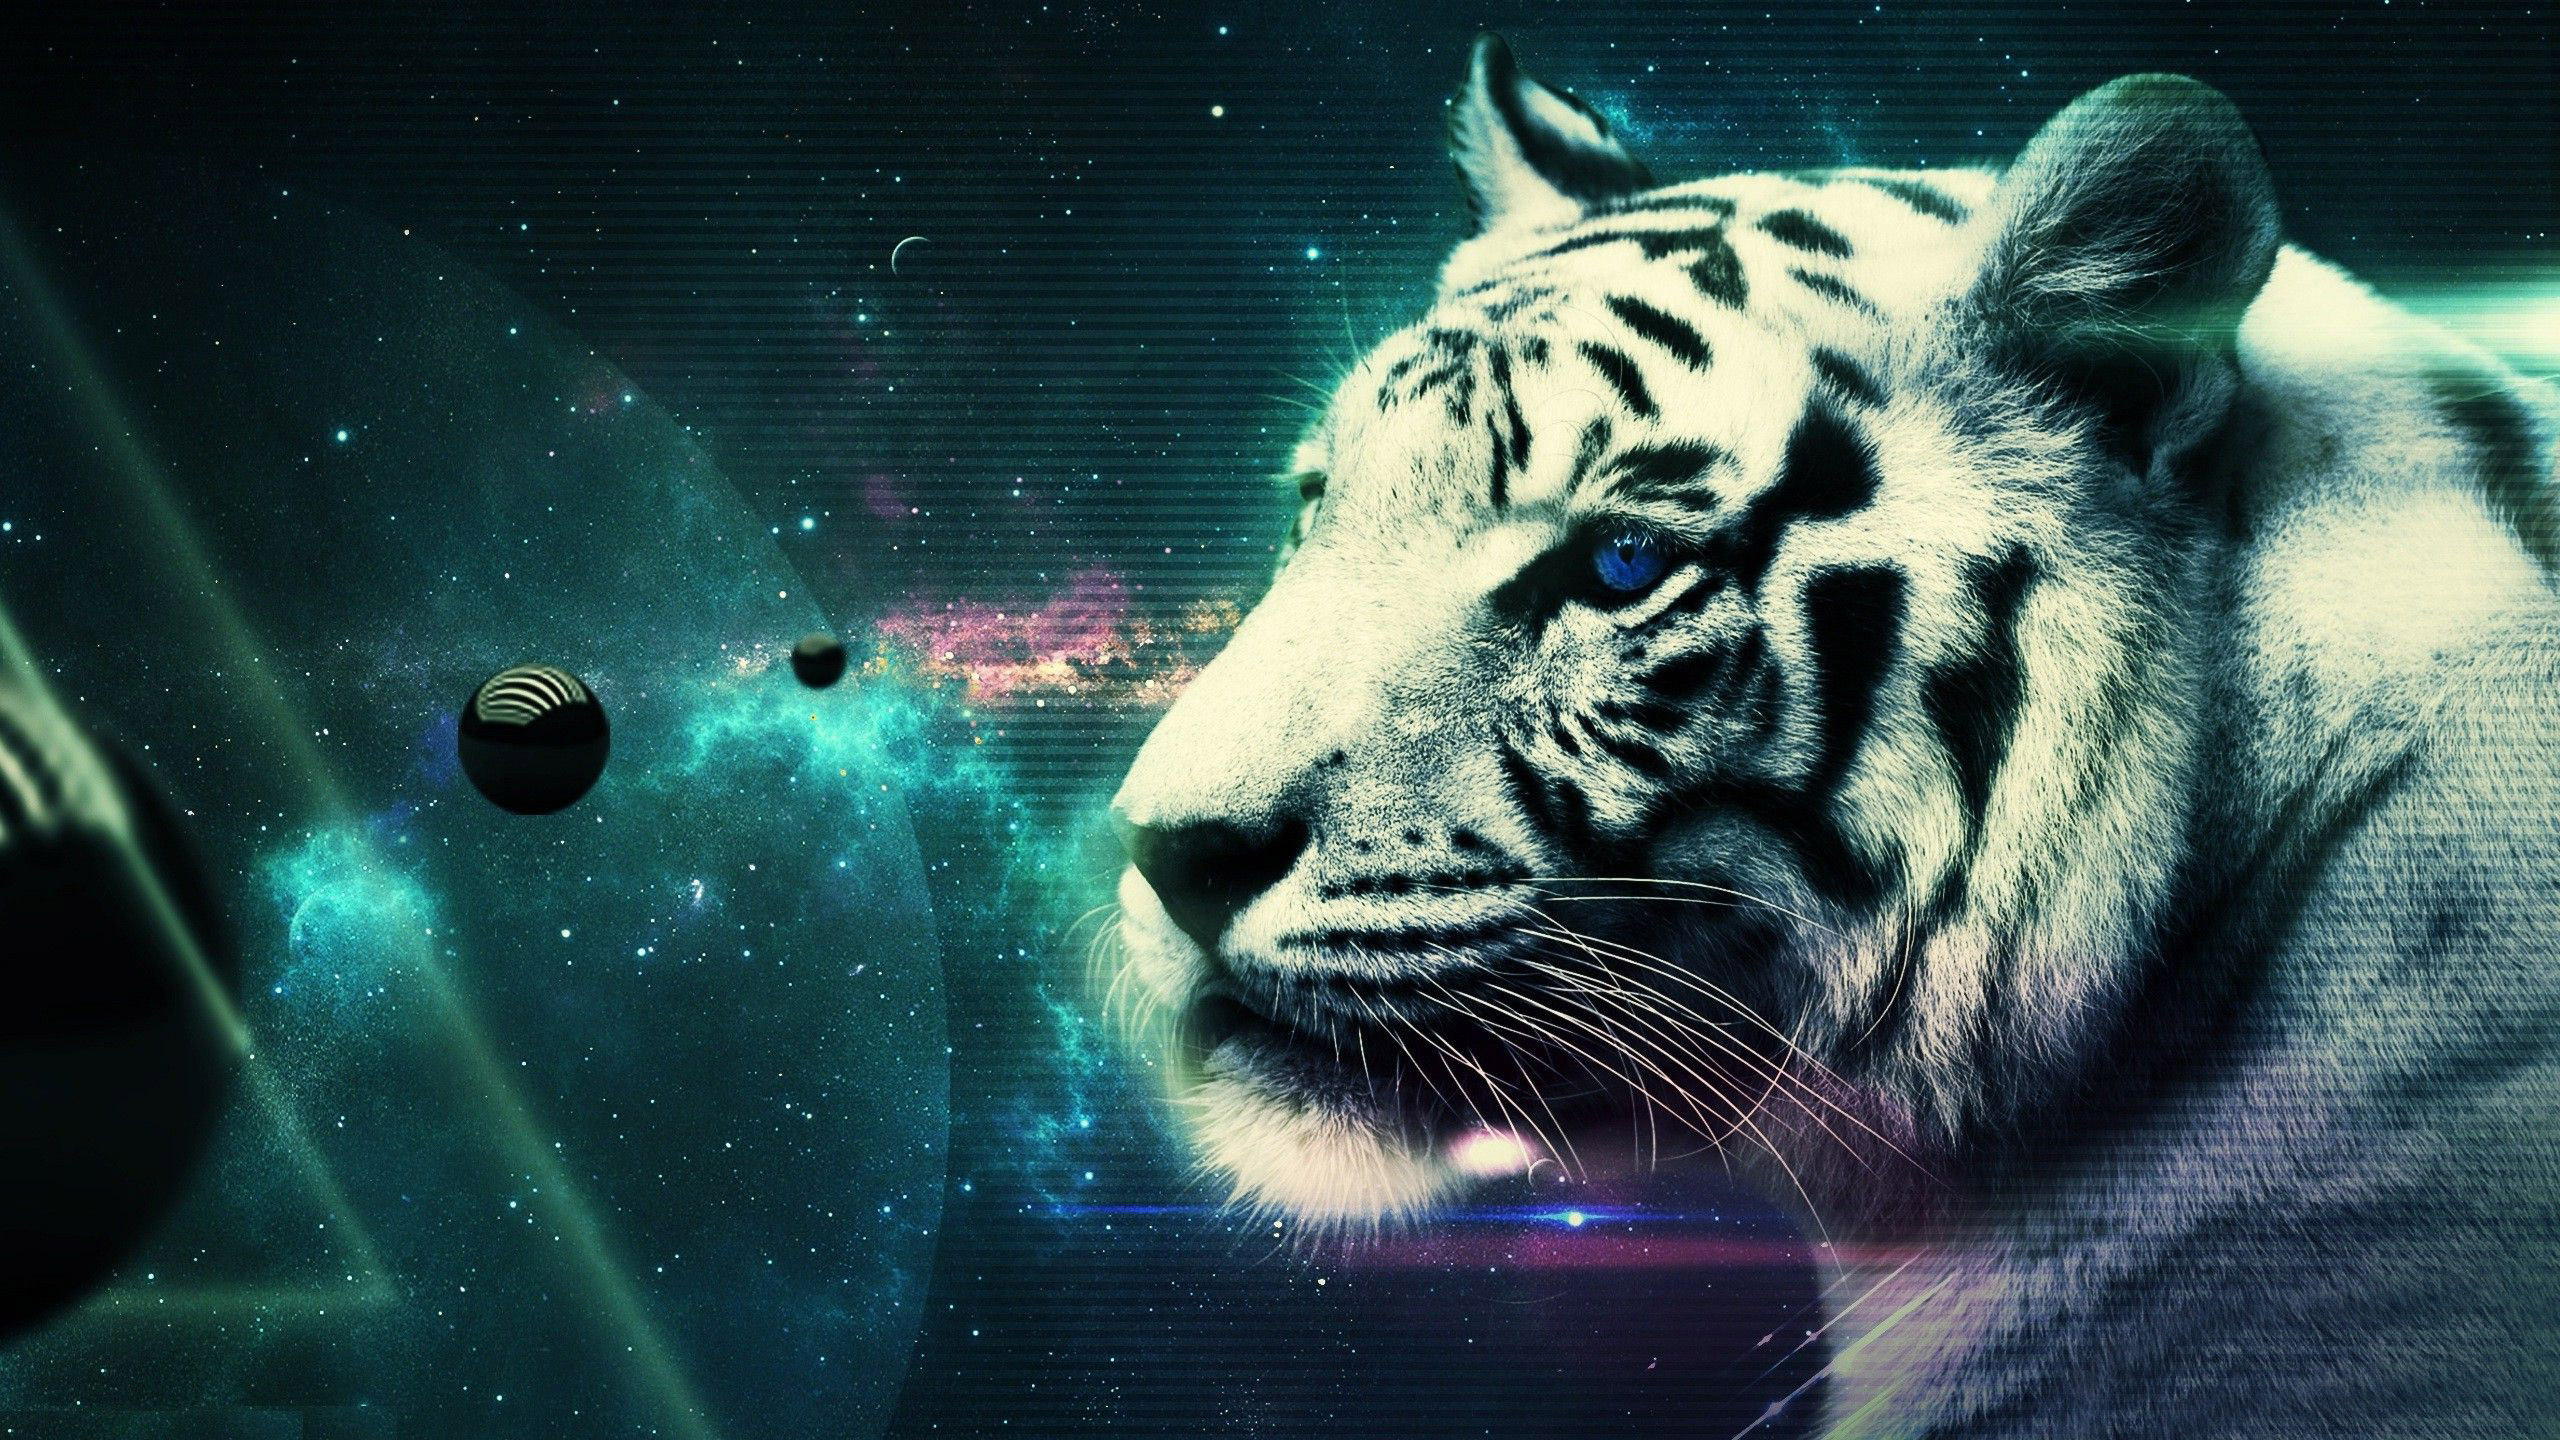 white tiger wallpaper hd ·①